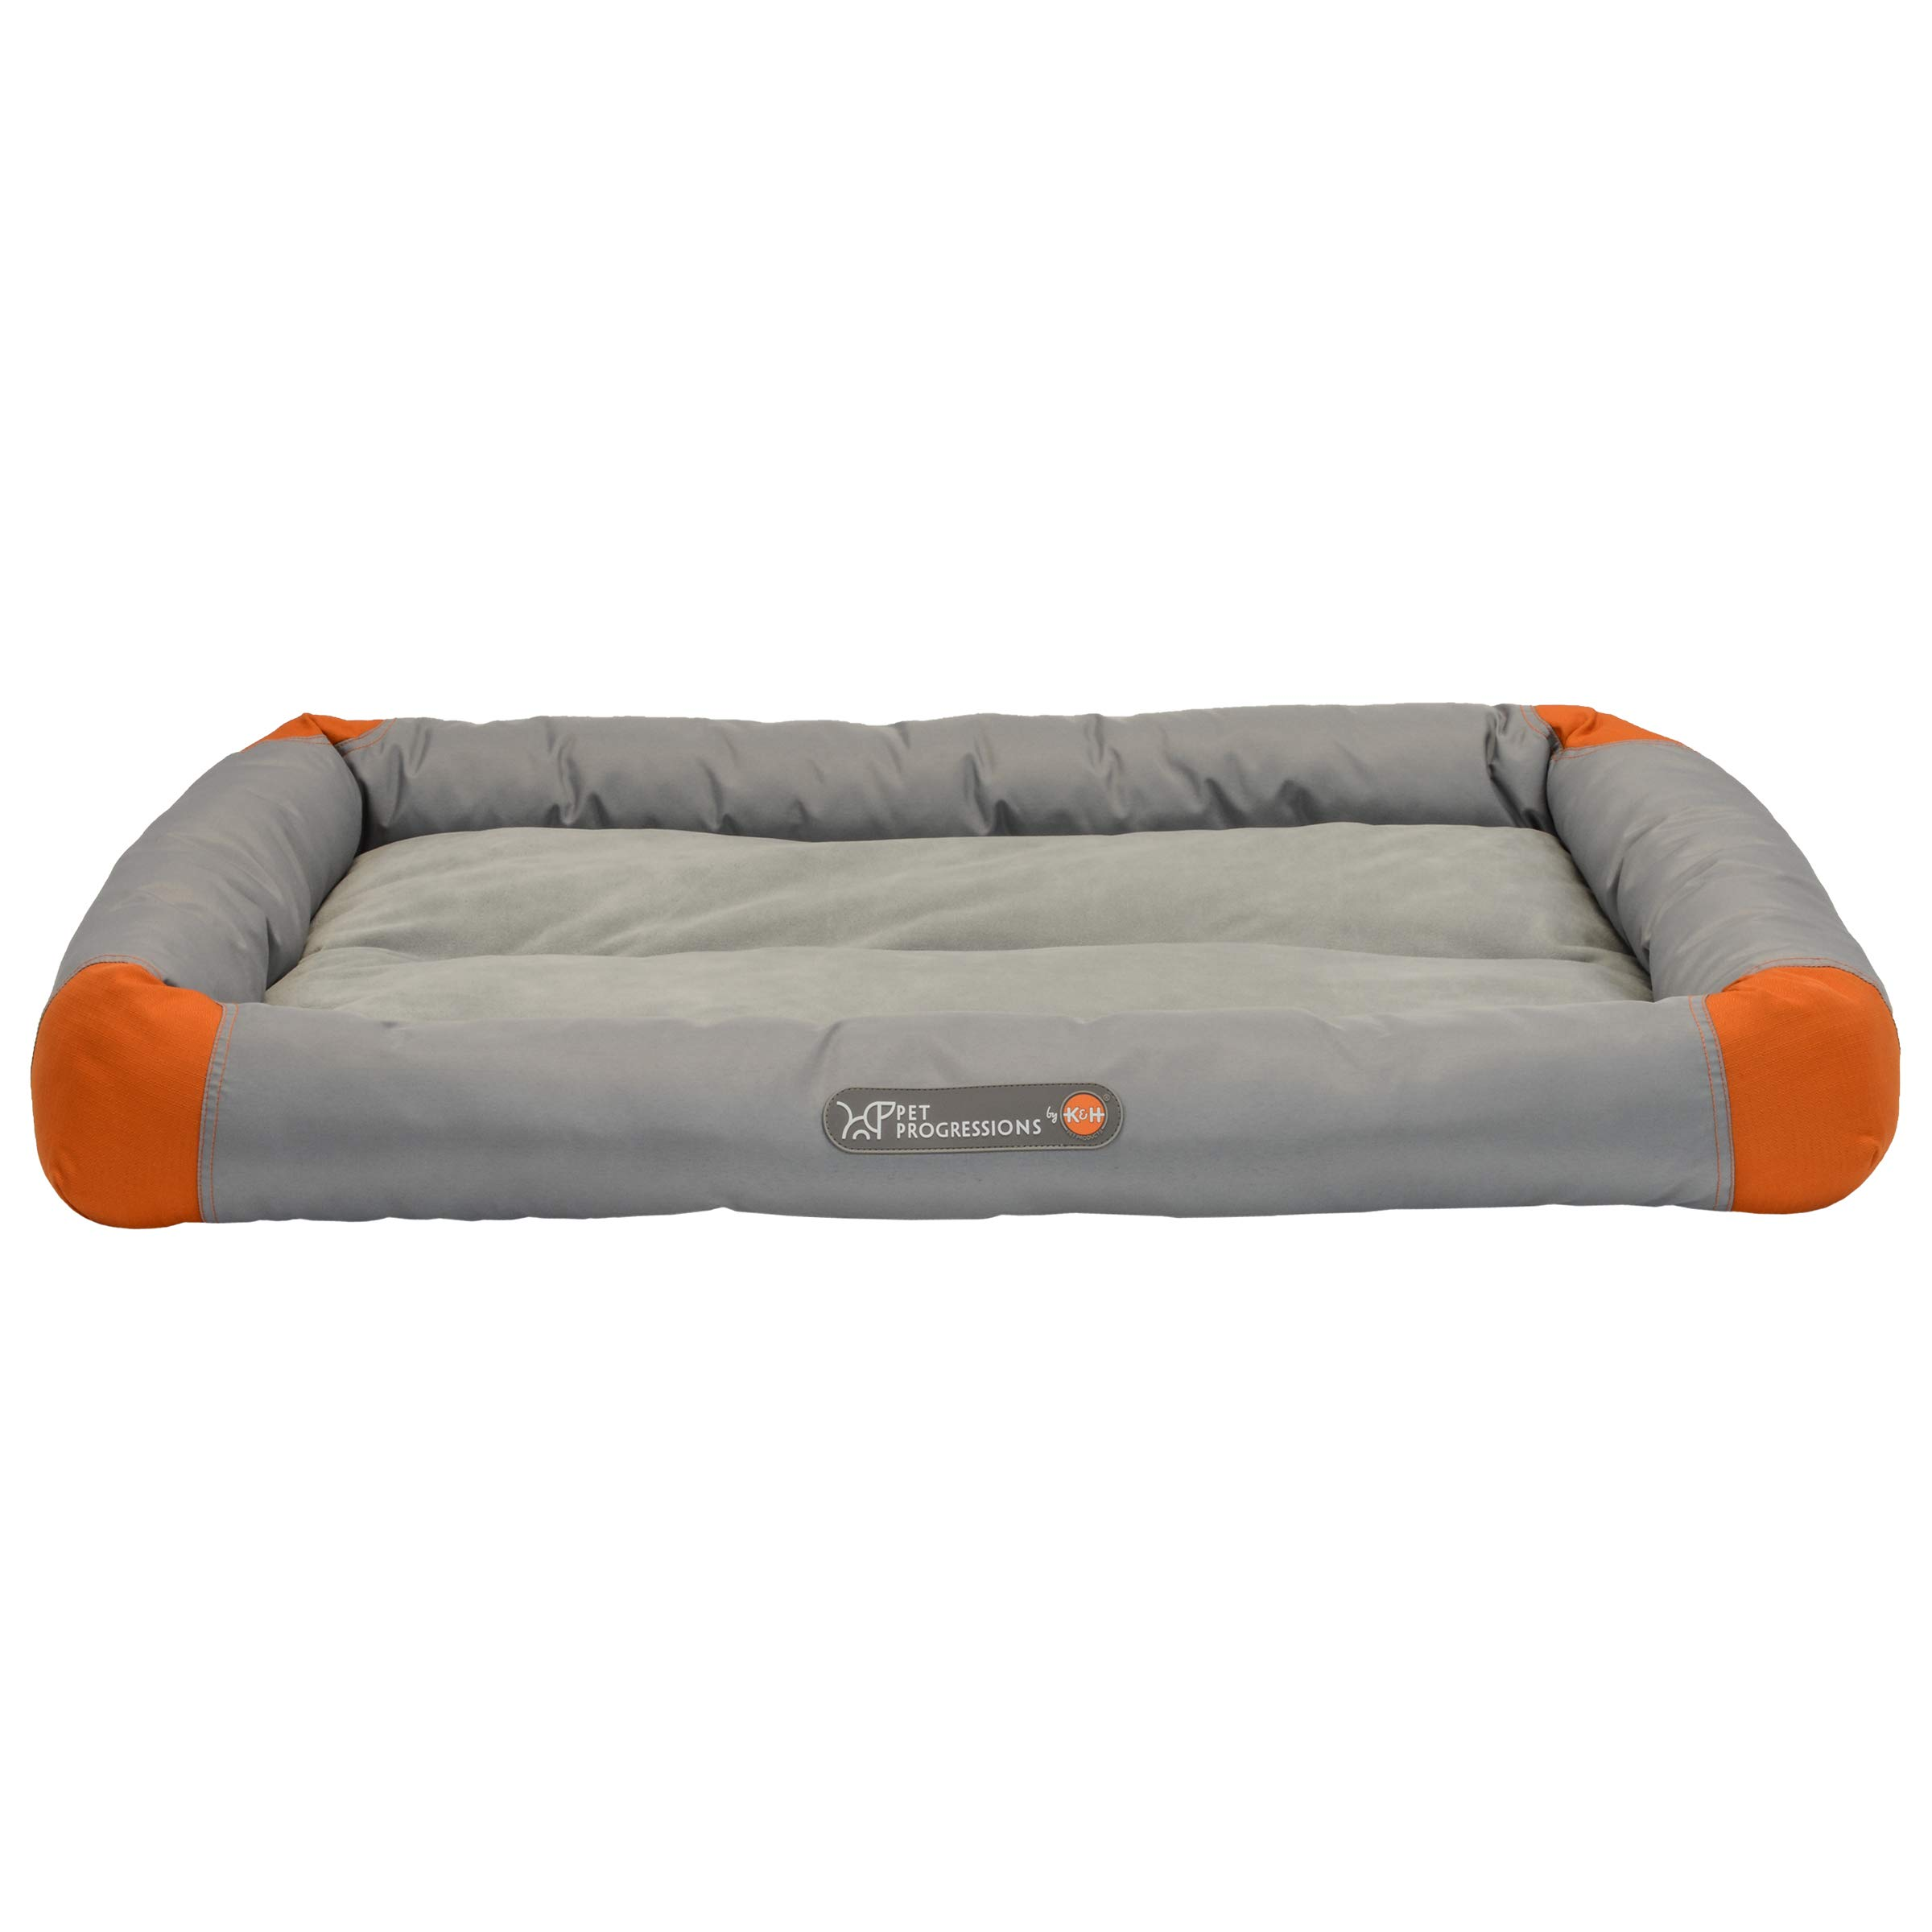 Pet Progressions by K&H Waterproof Puppy Bolster Pet Pad X-Large Grey - Piddle Proof, Stain & Odor Resistant, and Tear Resistant for Puppies & Adult Dogs